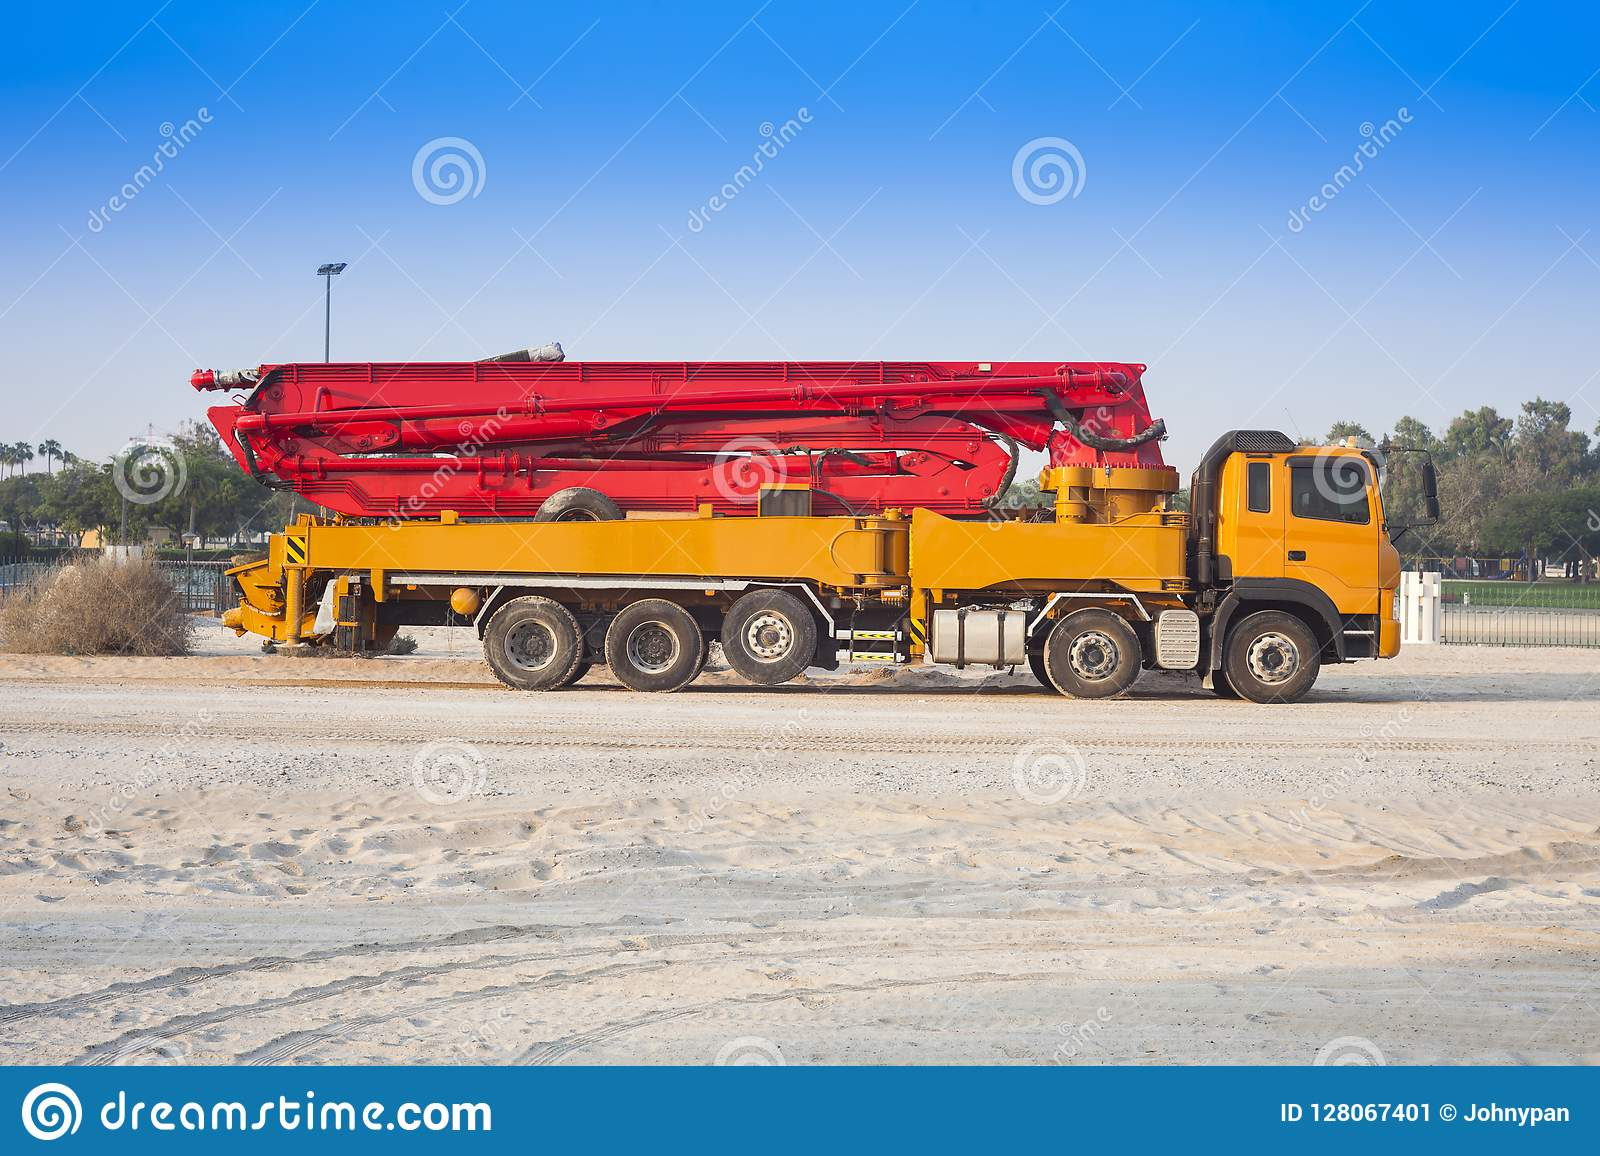 Truck Or Machine With Concrete Pump Stock Image - Image of machinery